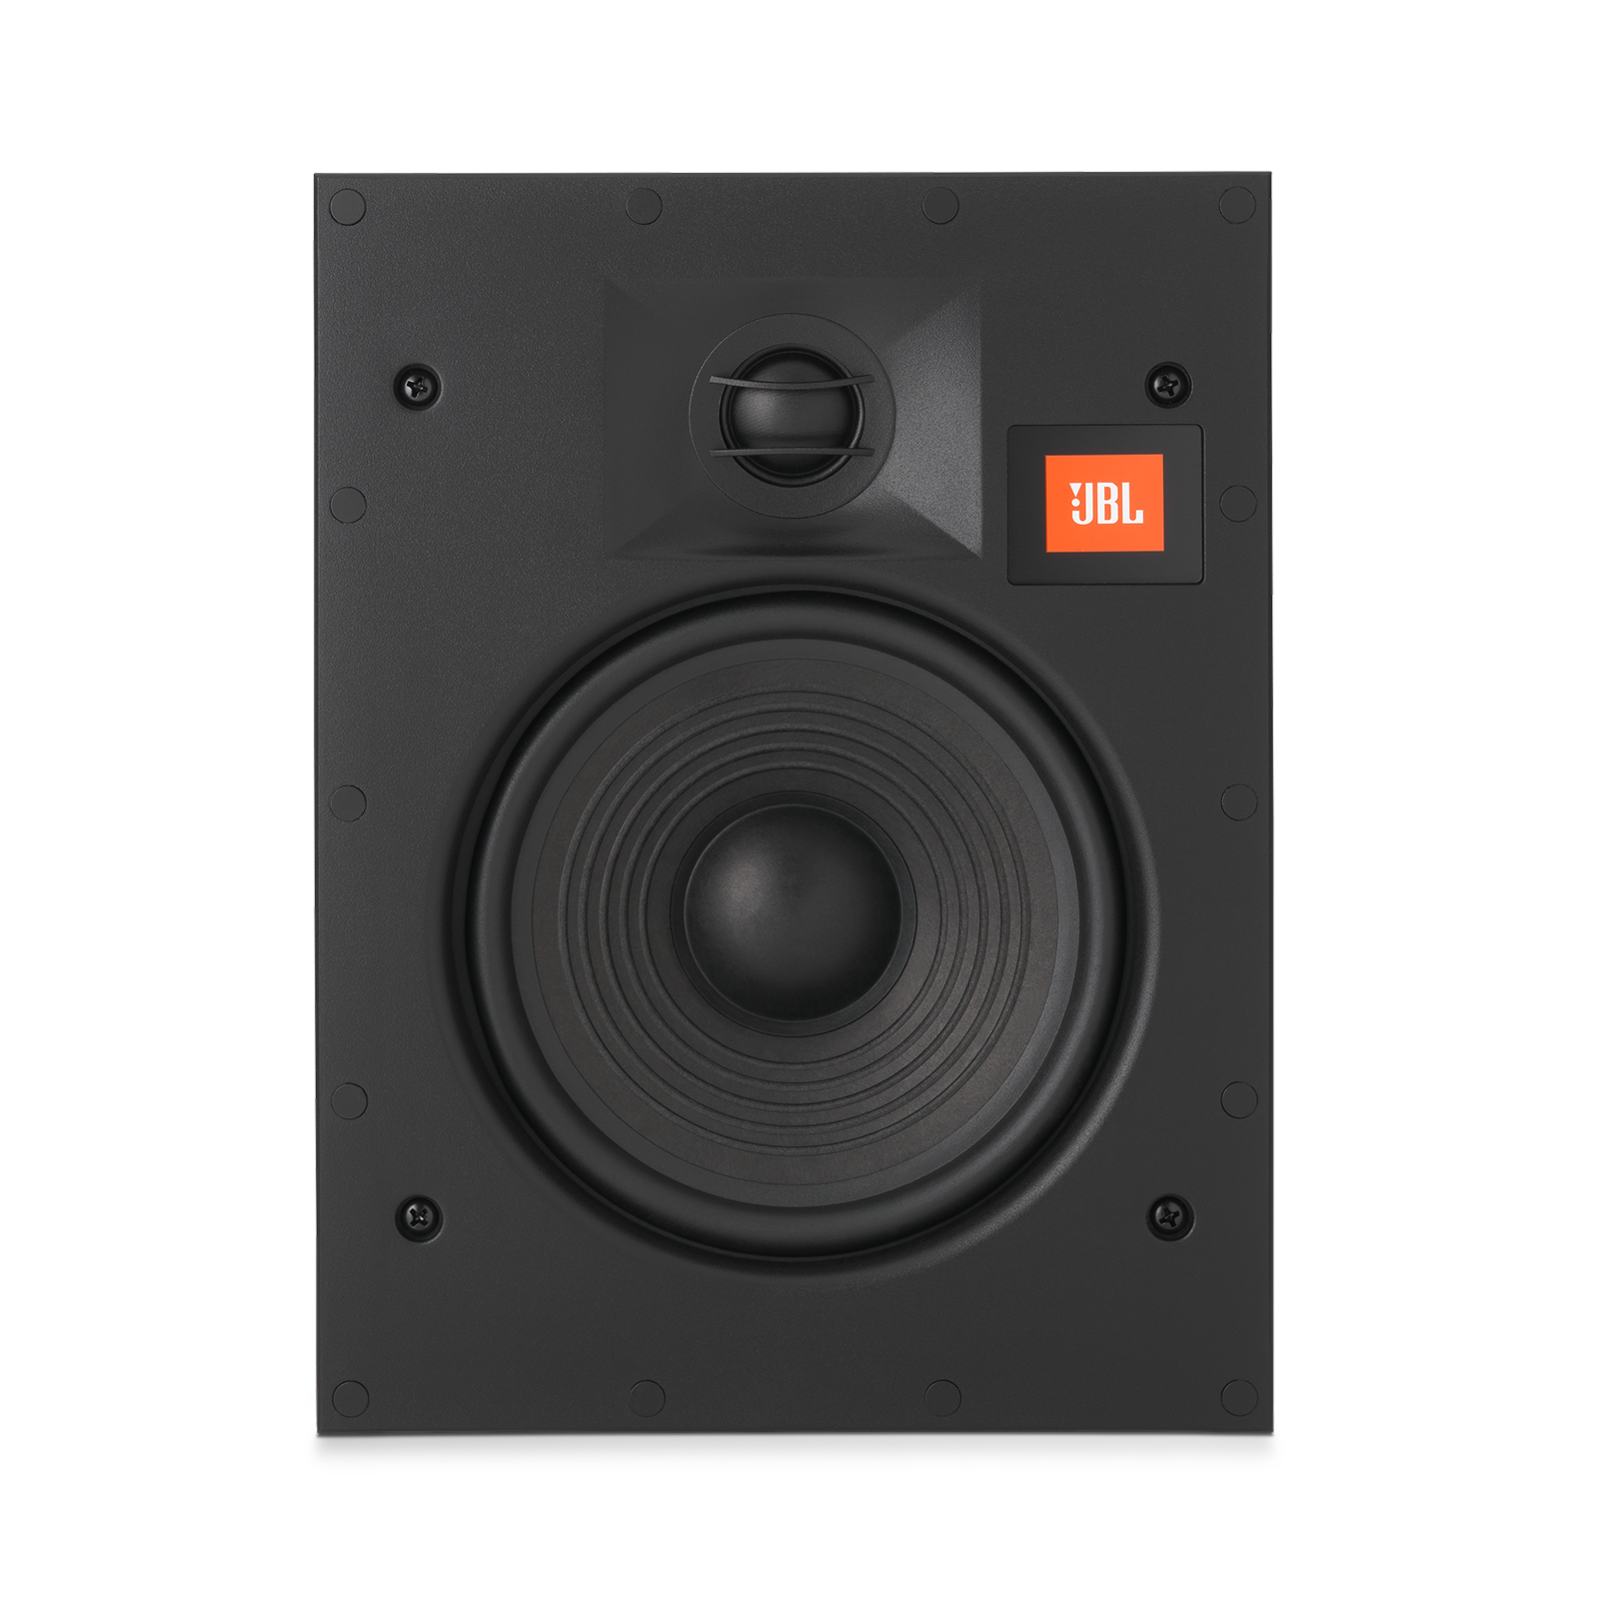 jbl hookup commercial How to wire htr4065 and jbl psw 1000 and how to wire htr4065 and jbl psw 1000 and jbl speakers or you can start with volume up all the way and tune it down.